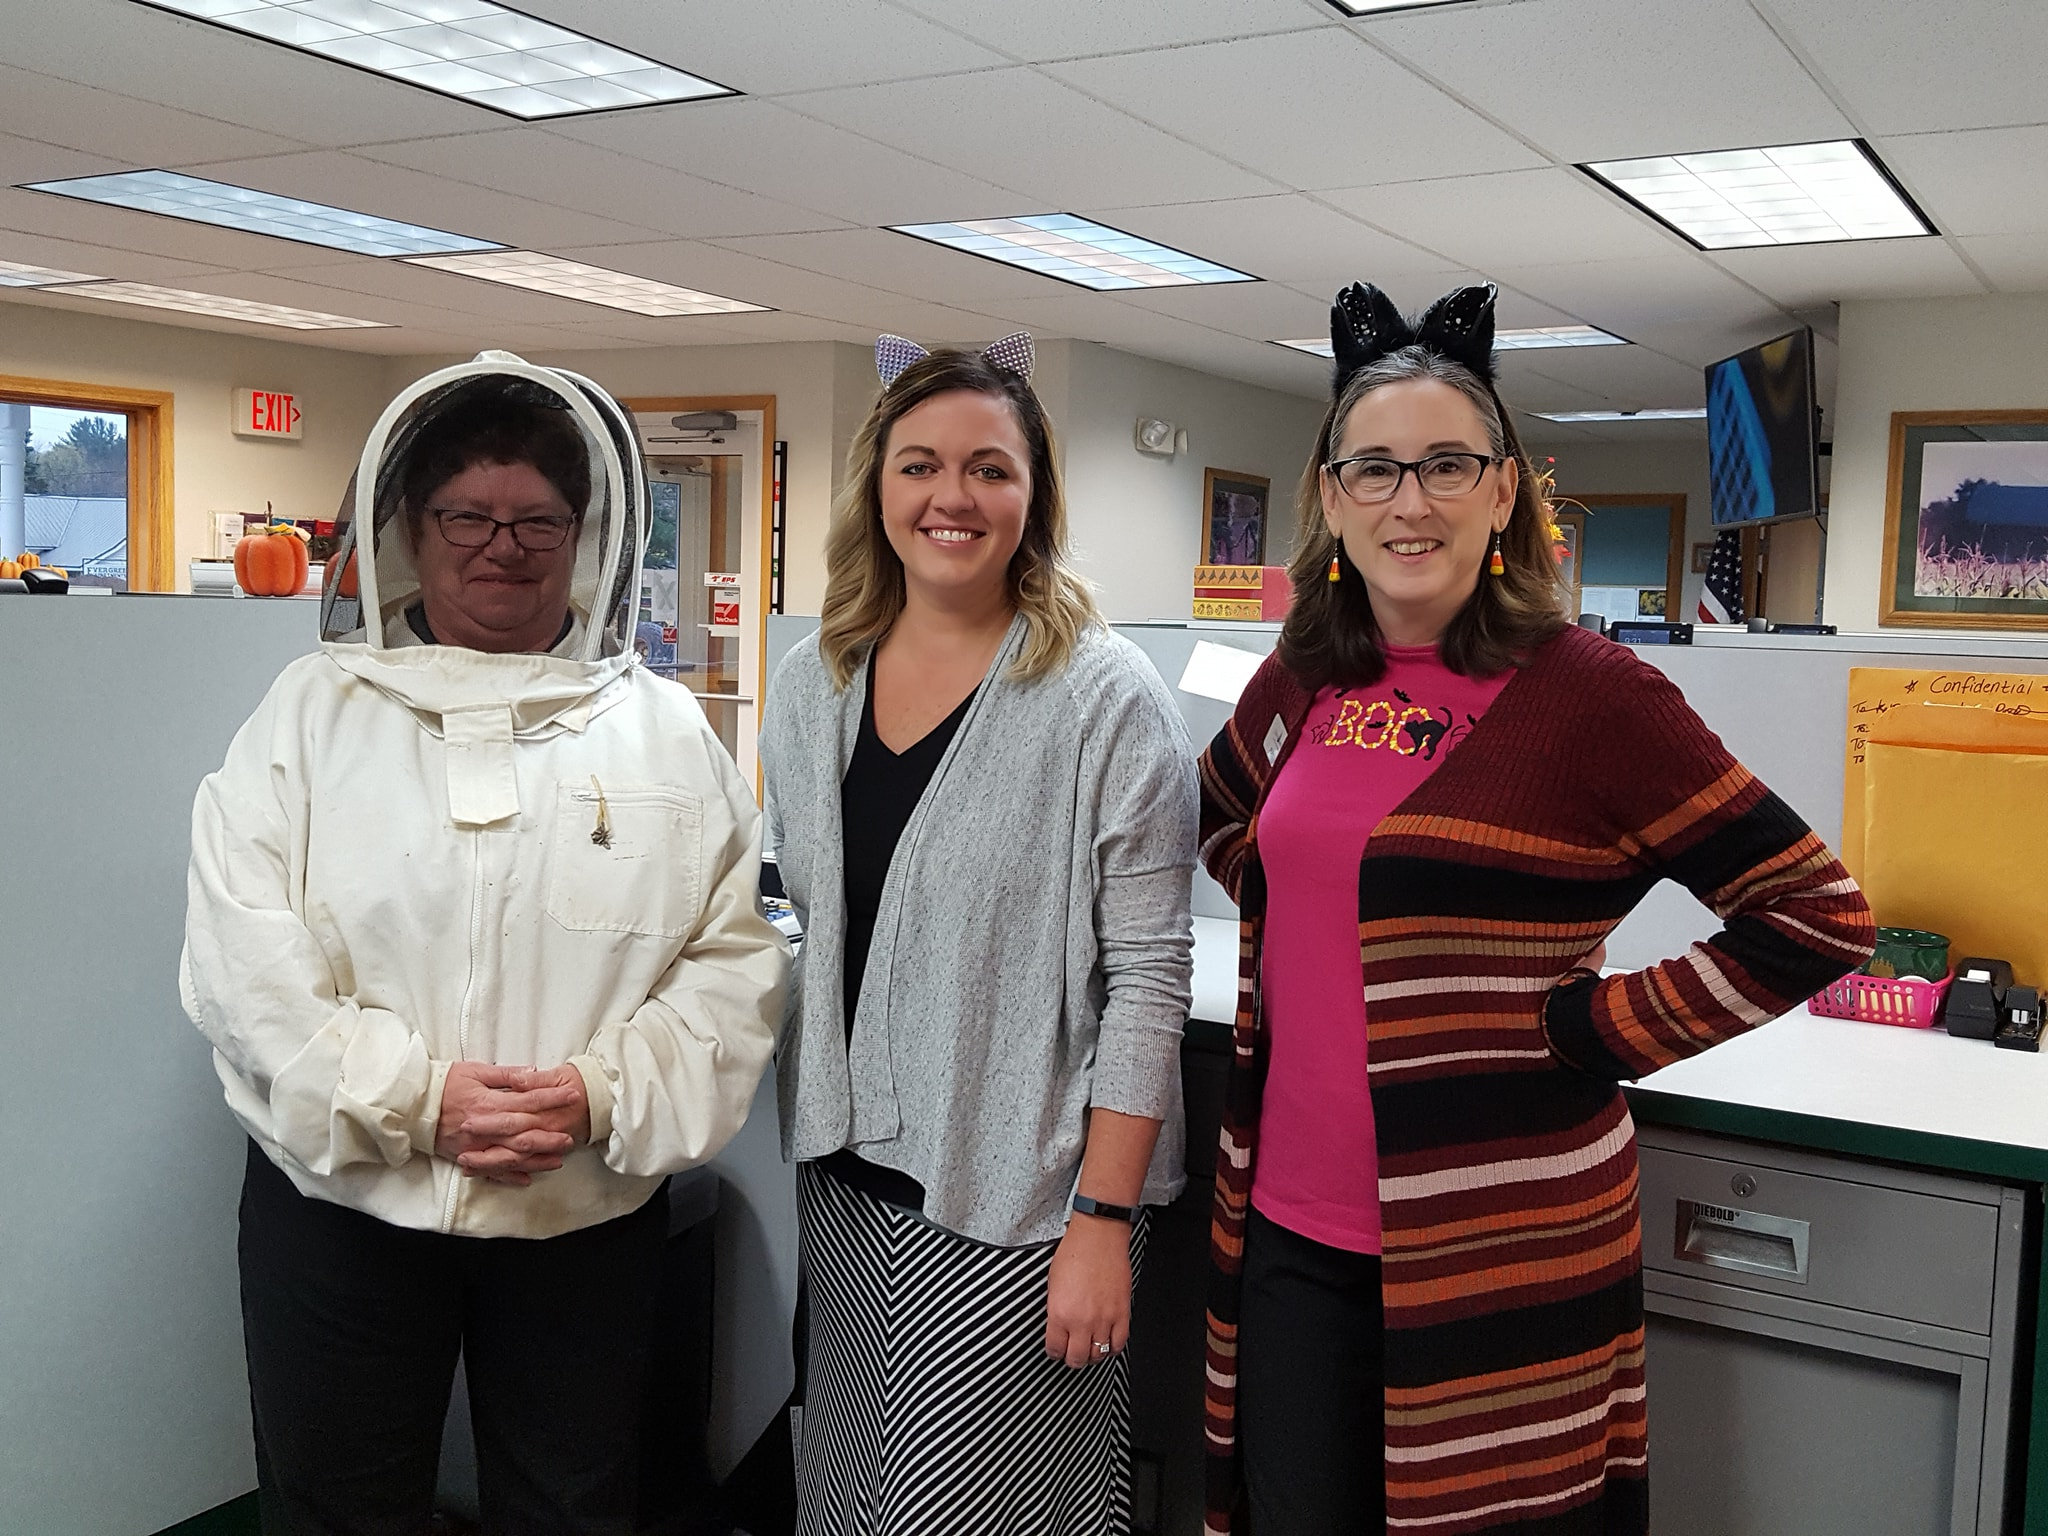 employees dressed up for halloween